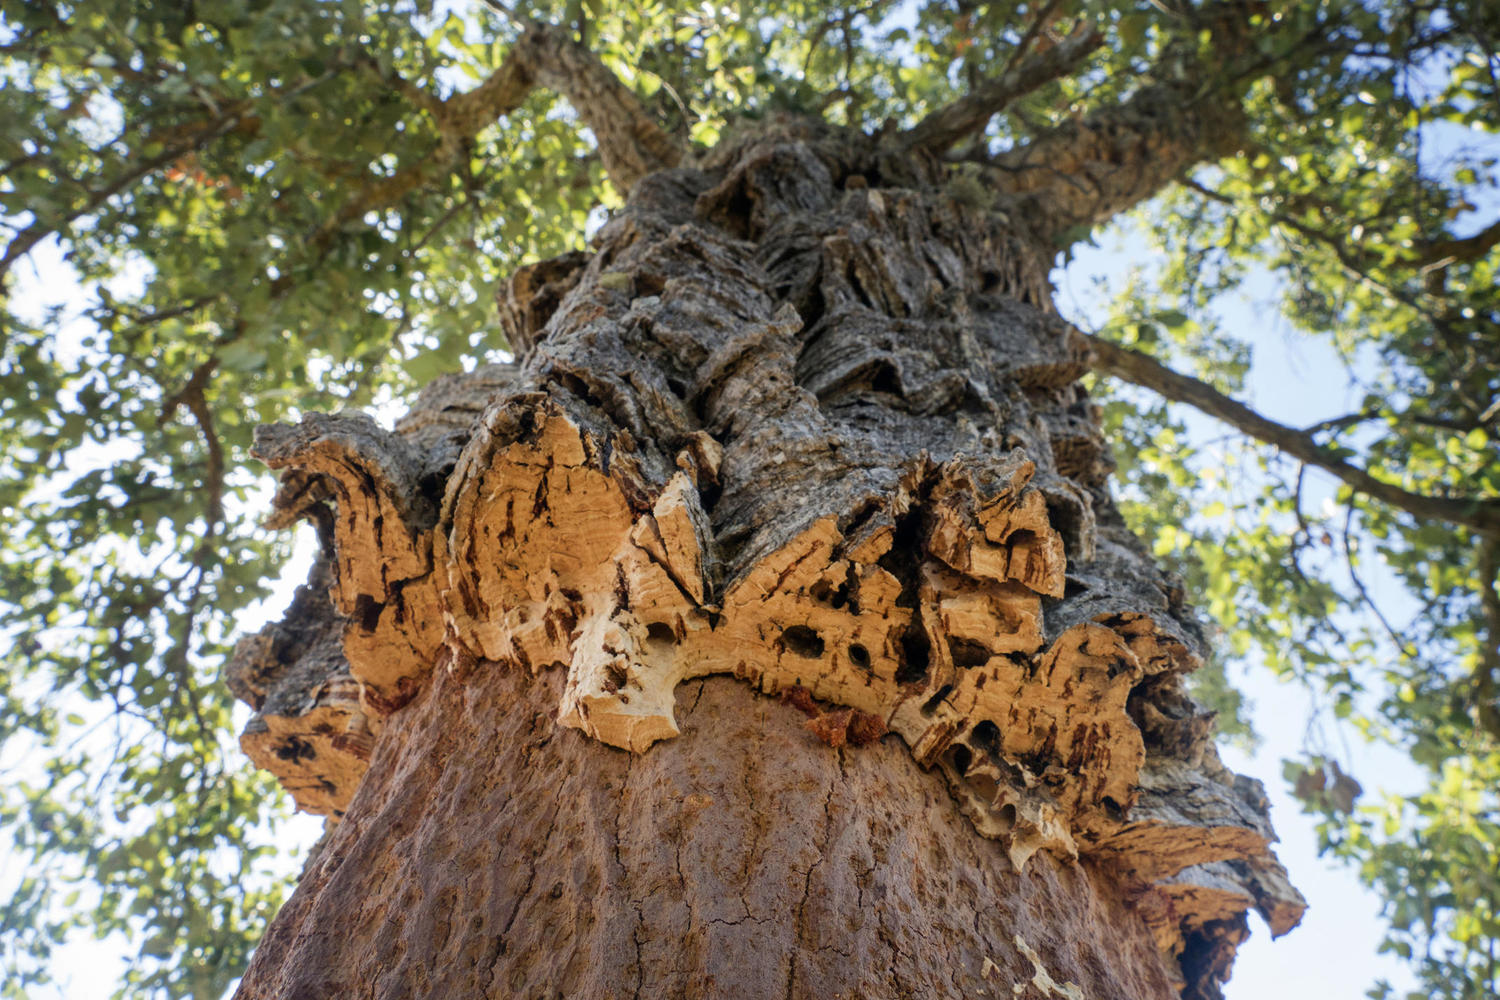 Close up of the Alentejo cork oak